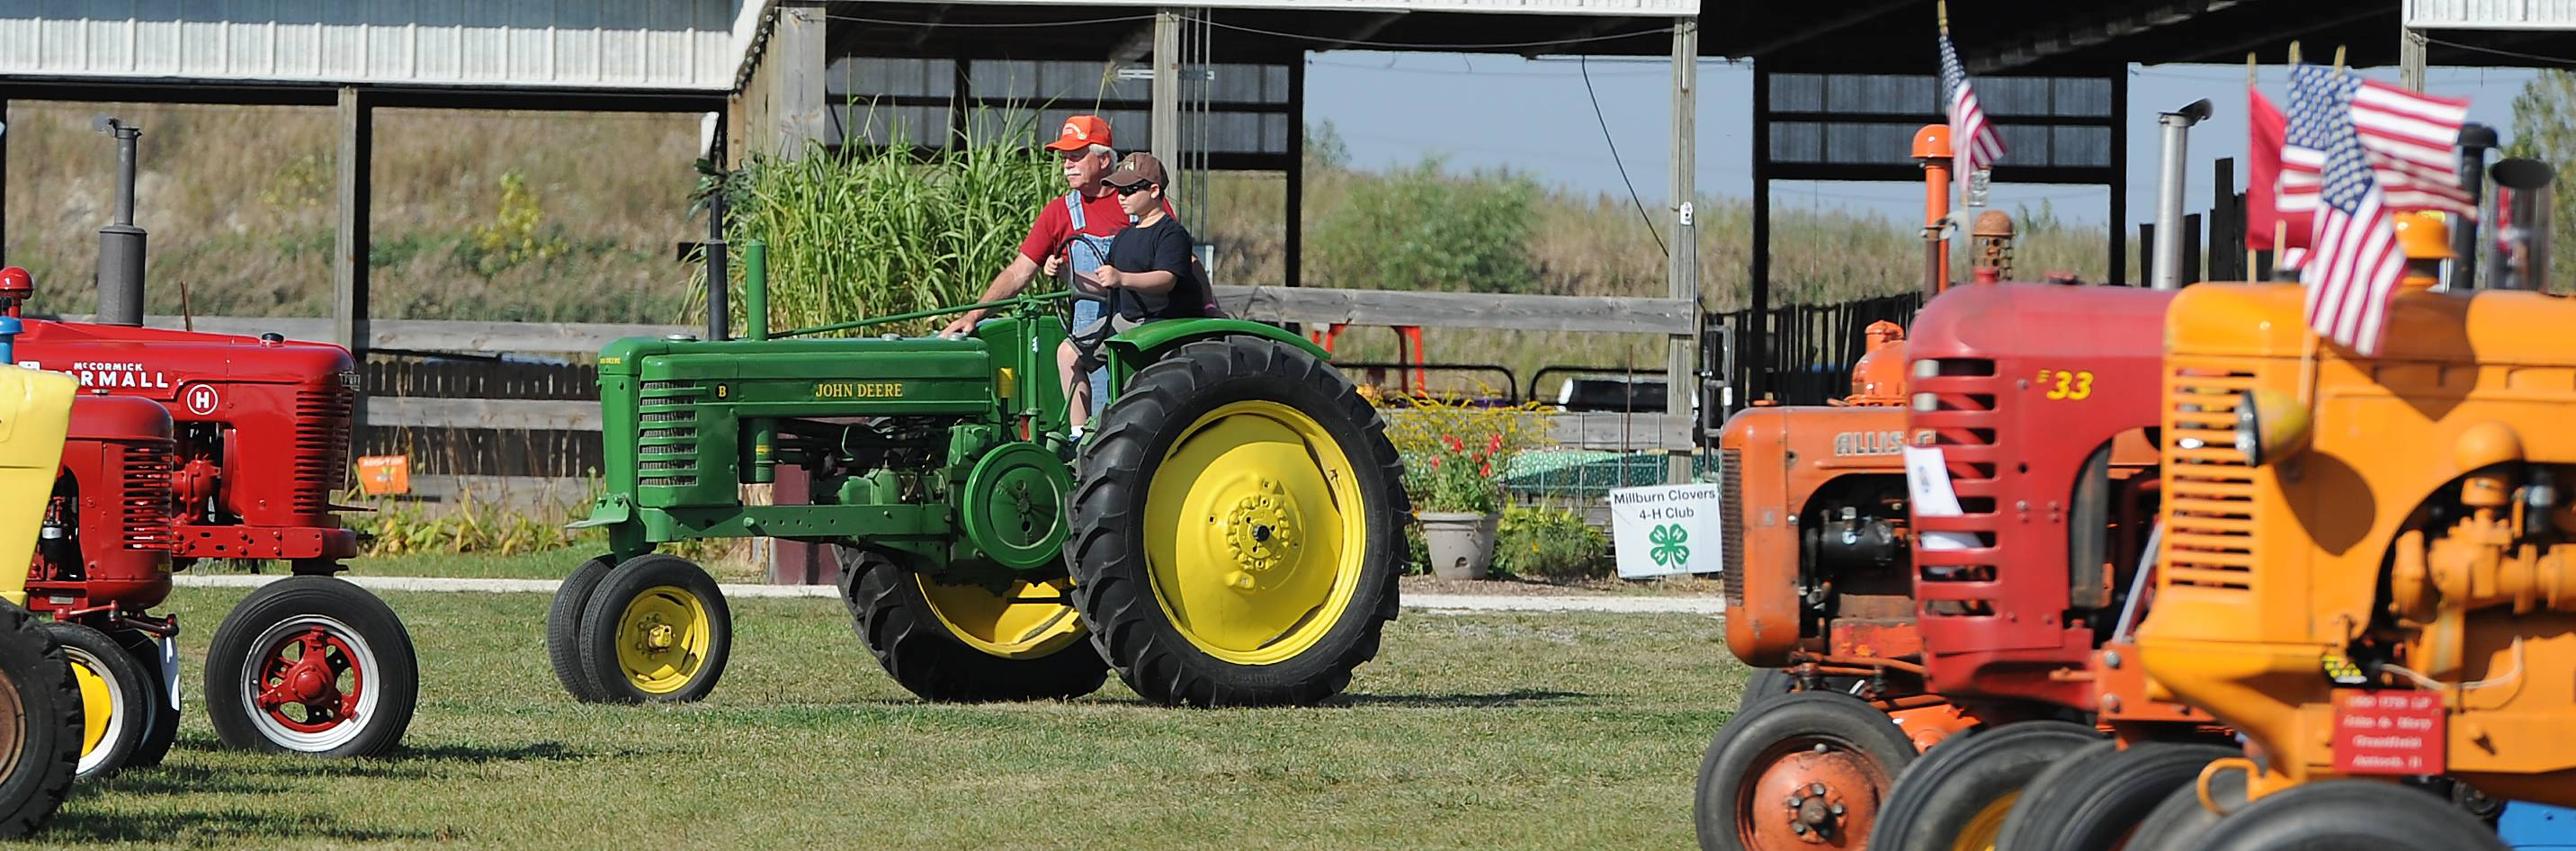 Bryan Dussault, 11, of Winthrop Harbor drives the 1941 John Deere tractor under the guidance of Don Schreiber of Gurnee at the Farm Heritage and Harvest Festival at the Lake County Fairgrounds on Sunday.